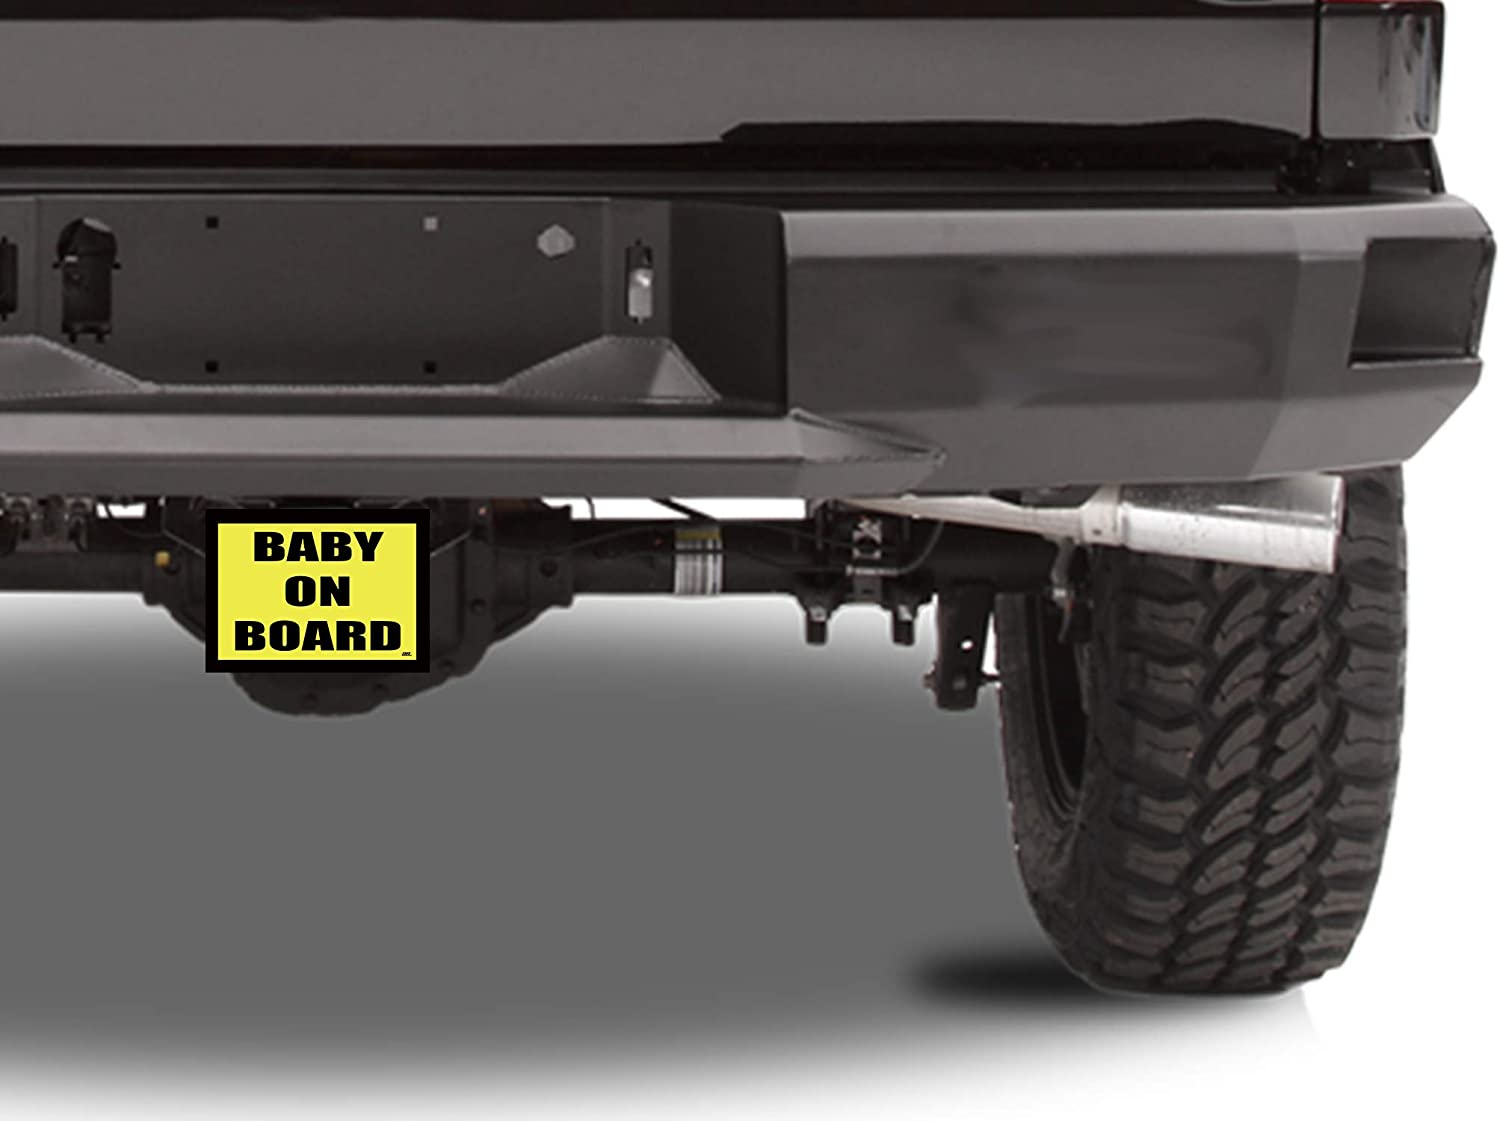 Rogue River Tactical Baby of Board Trailer Hitch Cover Plug Gift Idea for New Parents